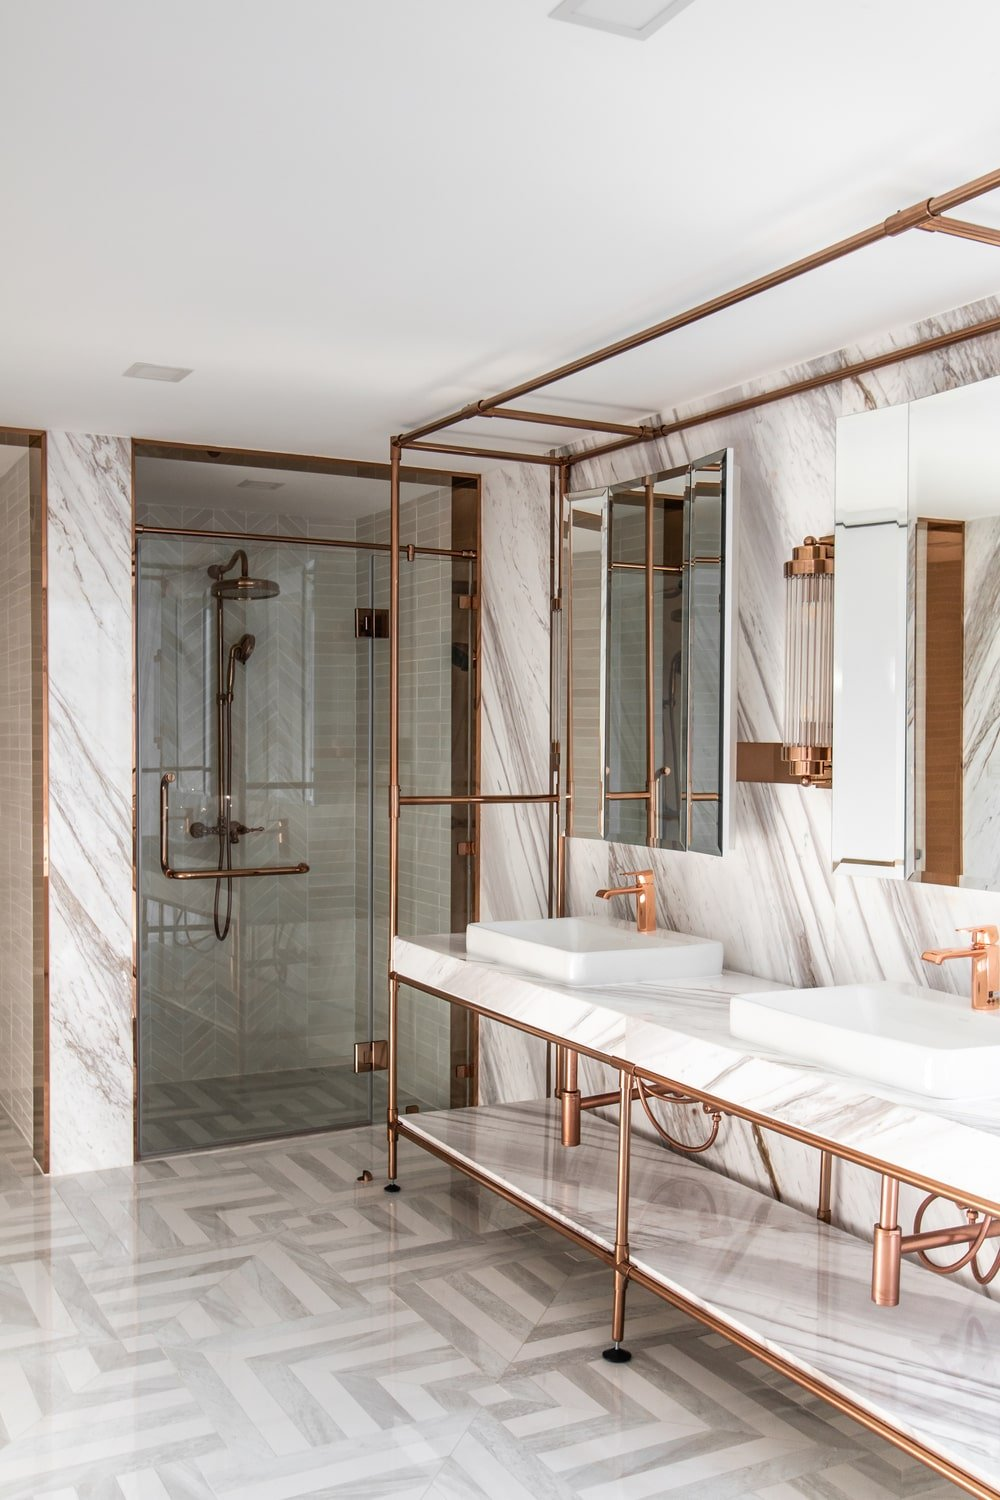 On the other side of the large two-sink vanity is the glass-enclosed shower area.